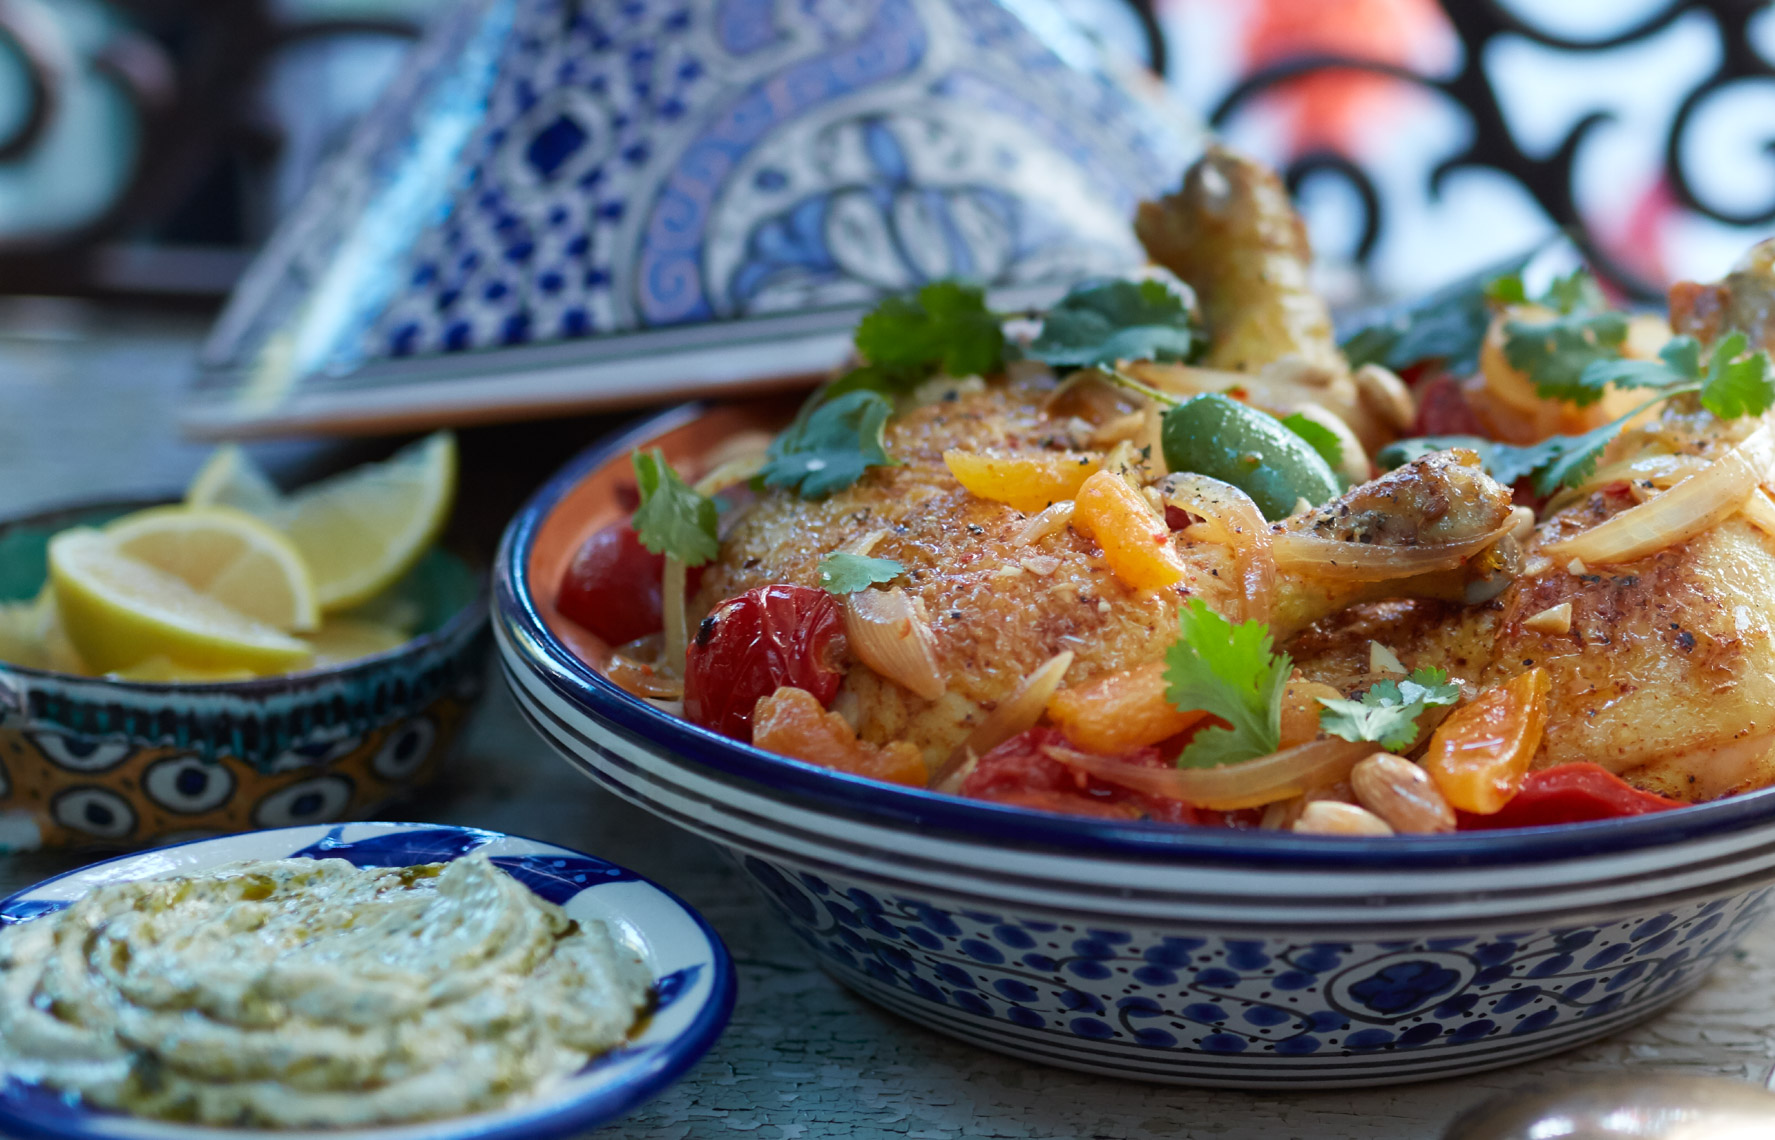 chicken tagine on blue moroccan bowl with lemon and hummus